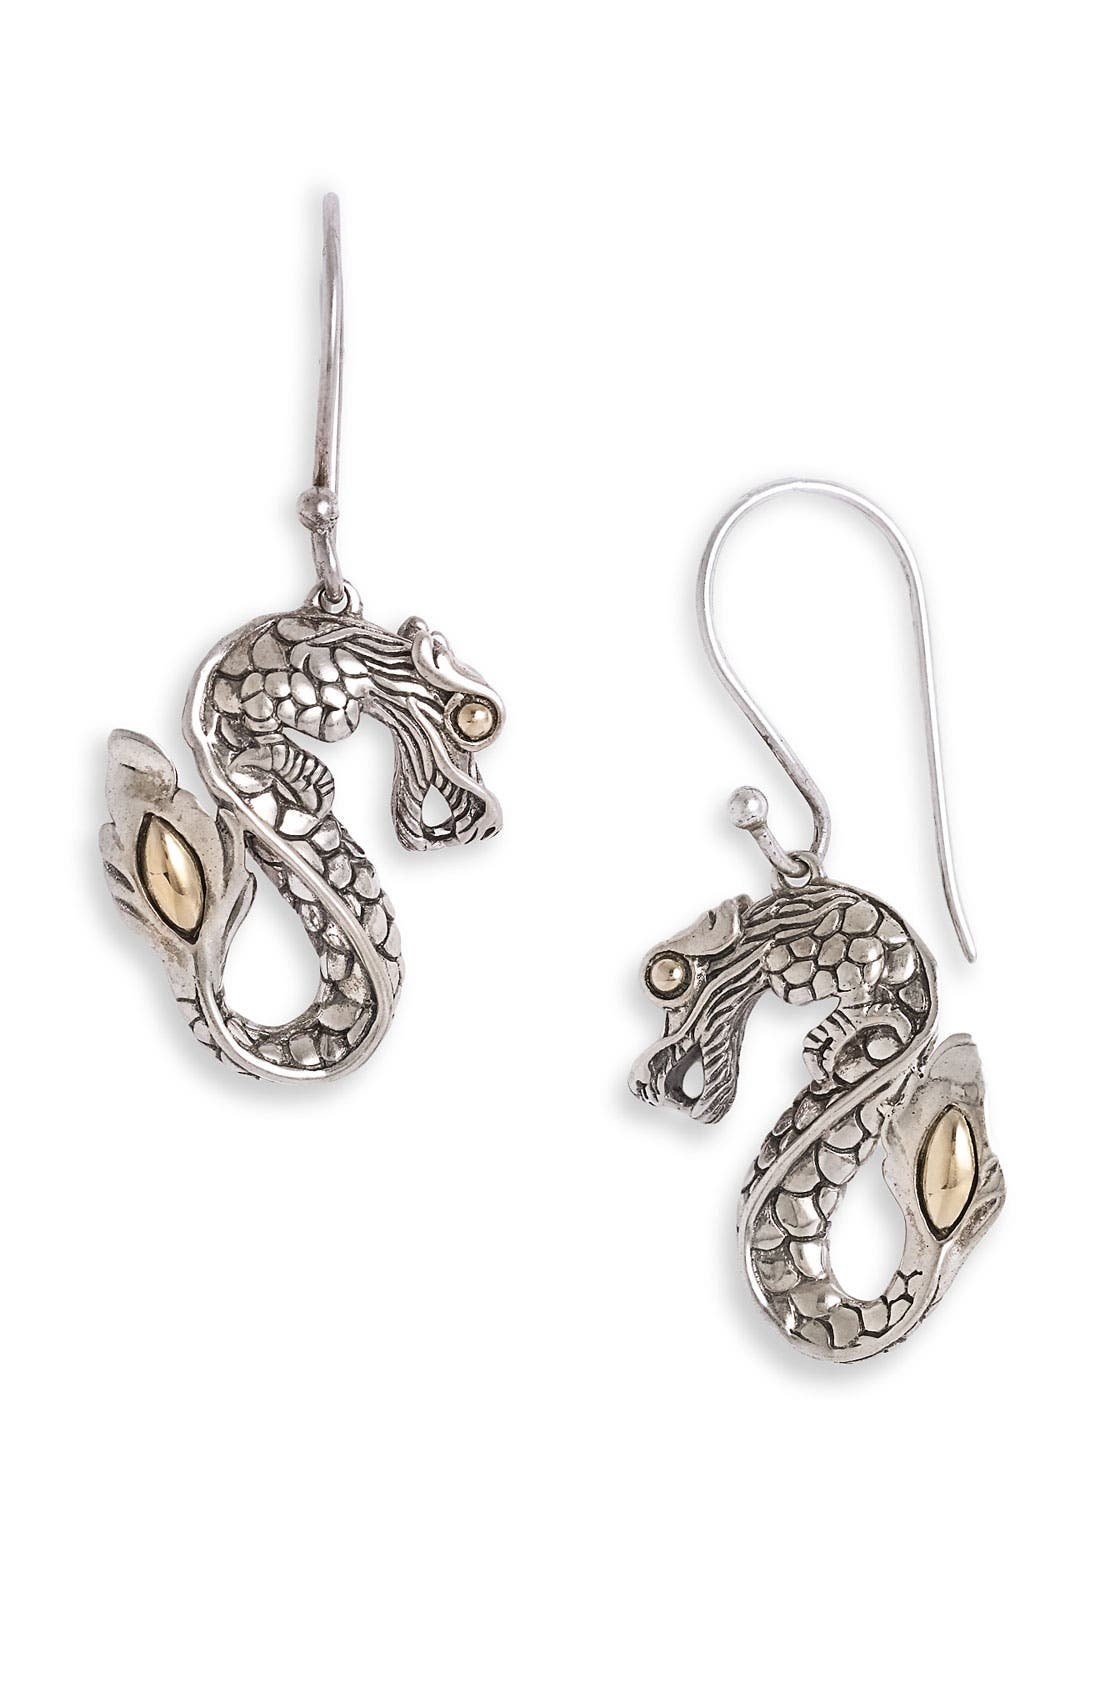 Main Image - John Hardy 'Naga' Dragon Drop Earrings